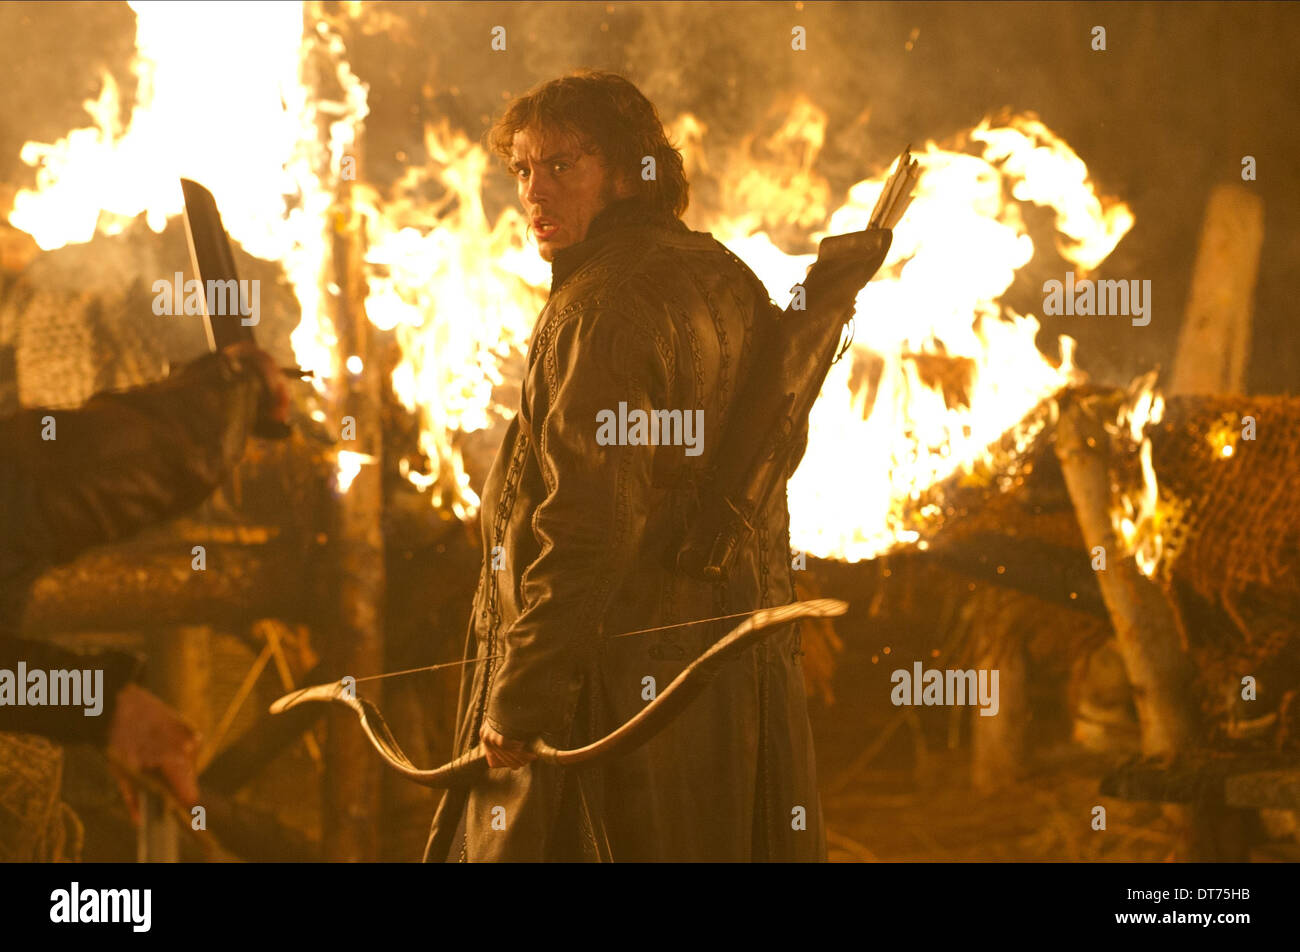 SAM CLAFLIN SNOW WHITE AND THE HUNTSMAN (2012) - Stock Image